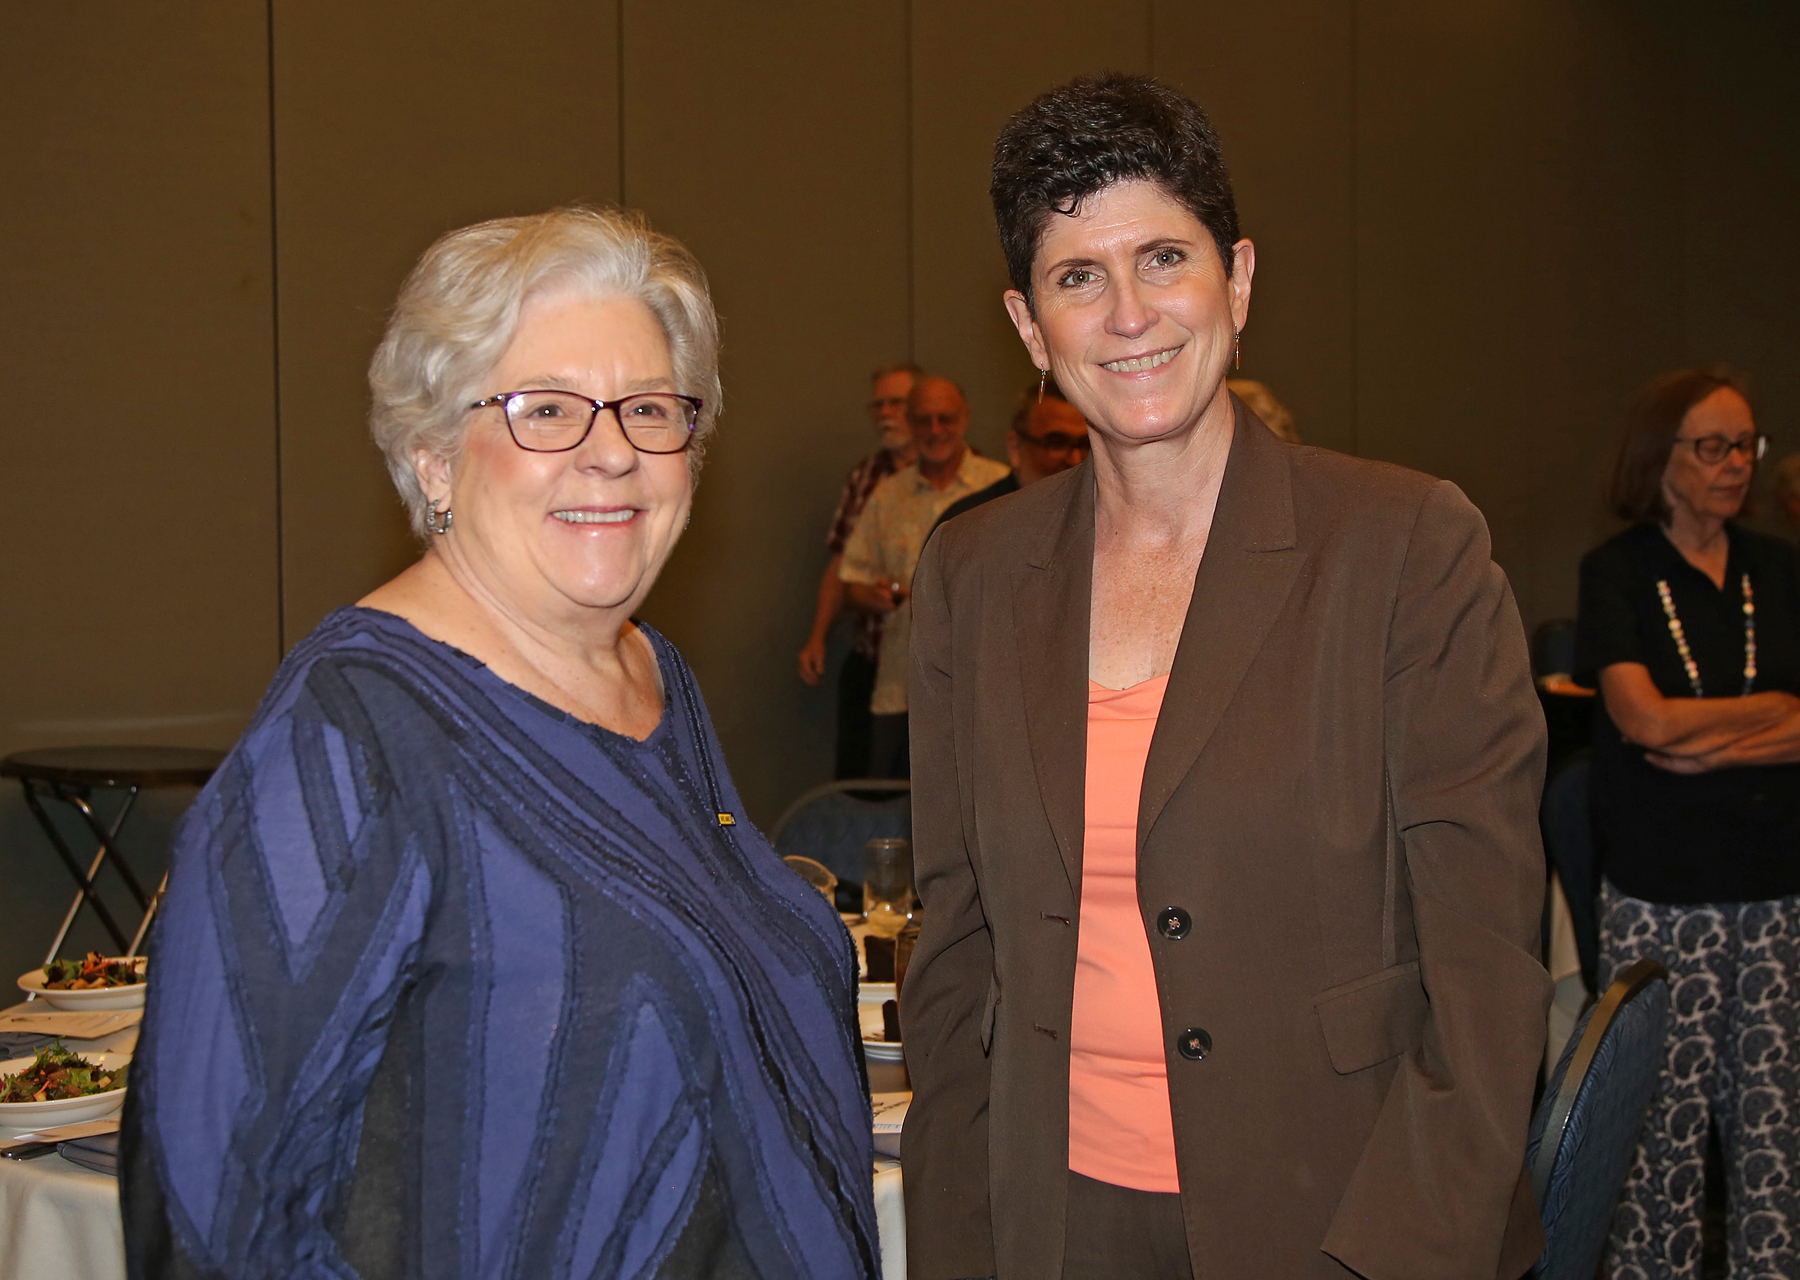 Lynn Mahoney and guest at luncheon